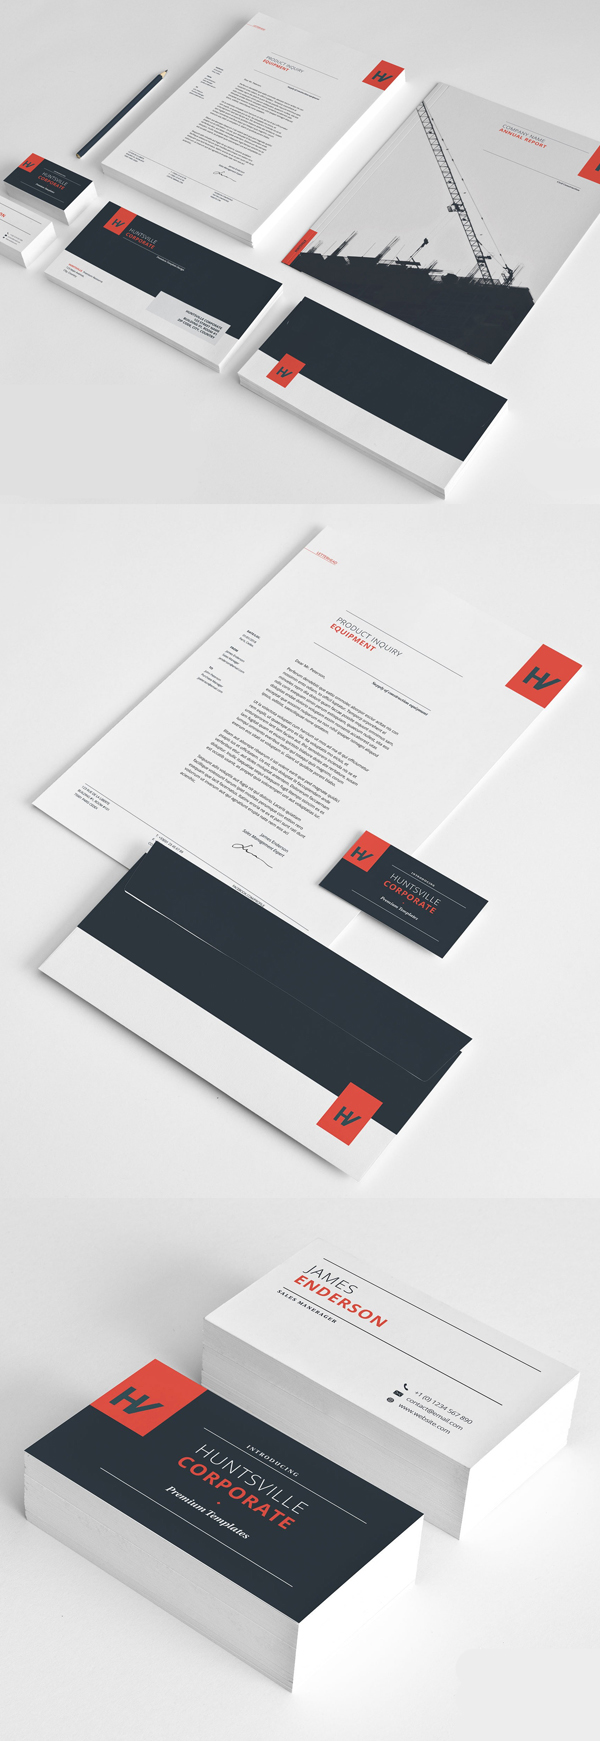 Modern Business Branding / Stationery Templates Design - 1